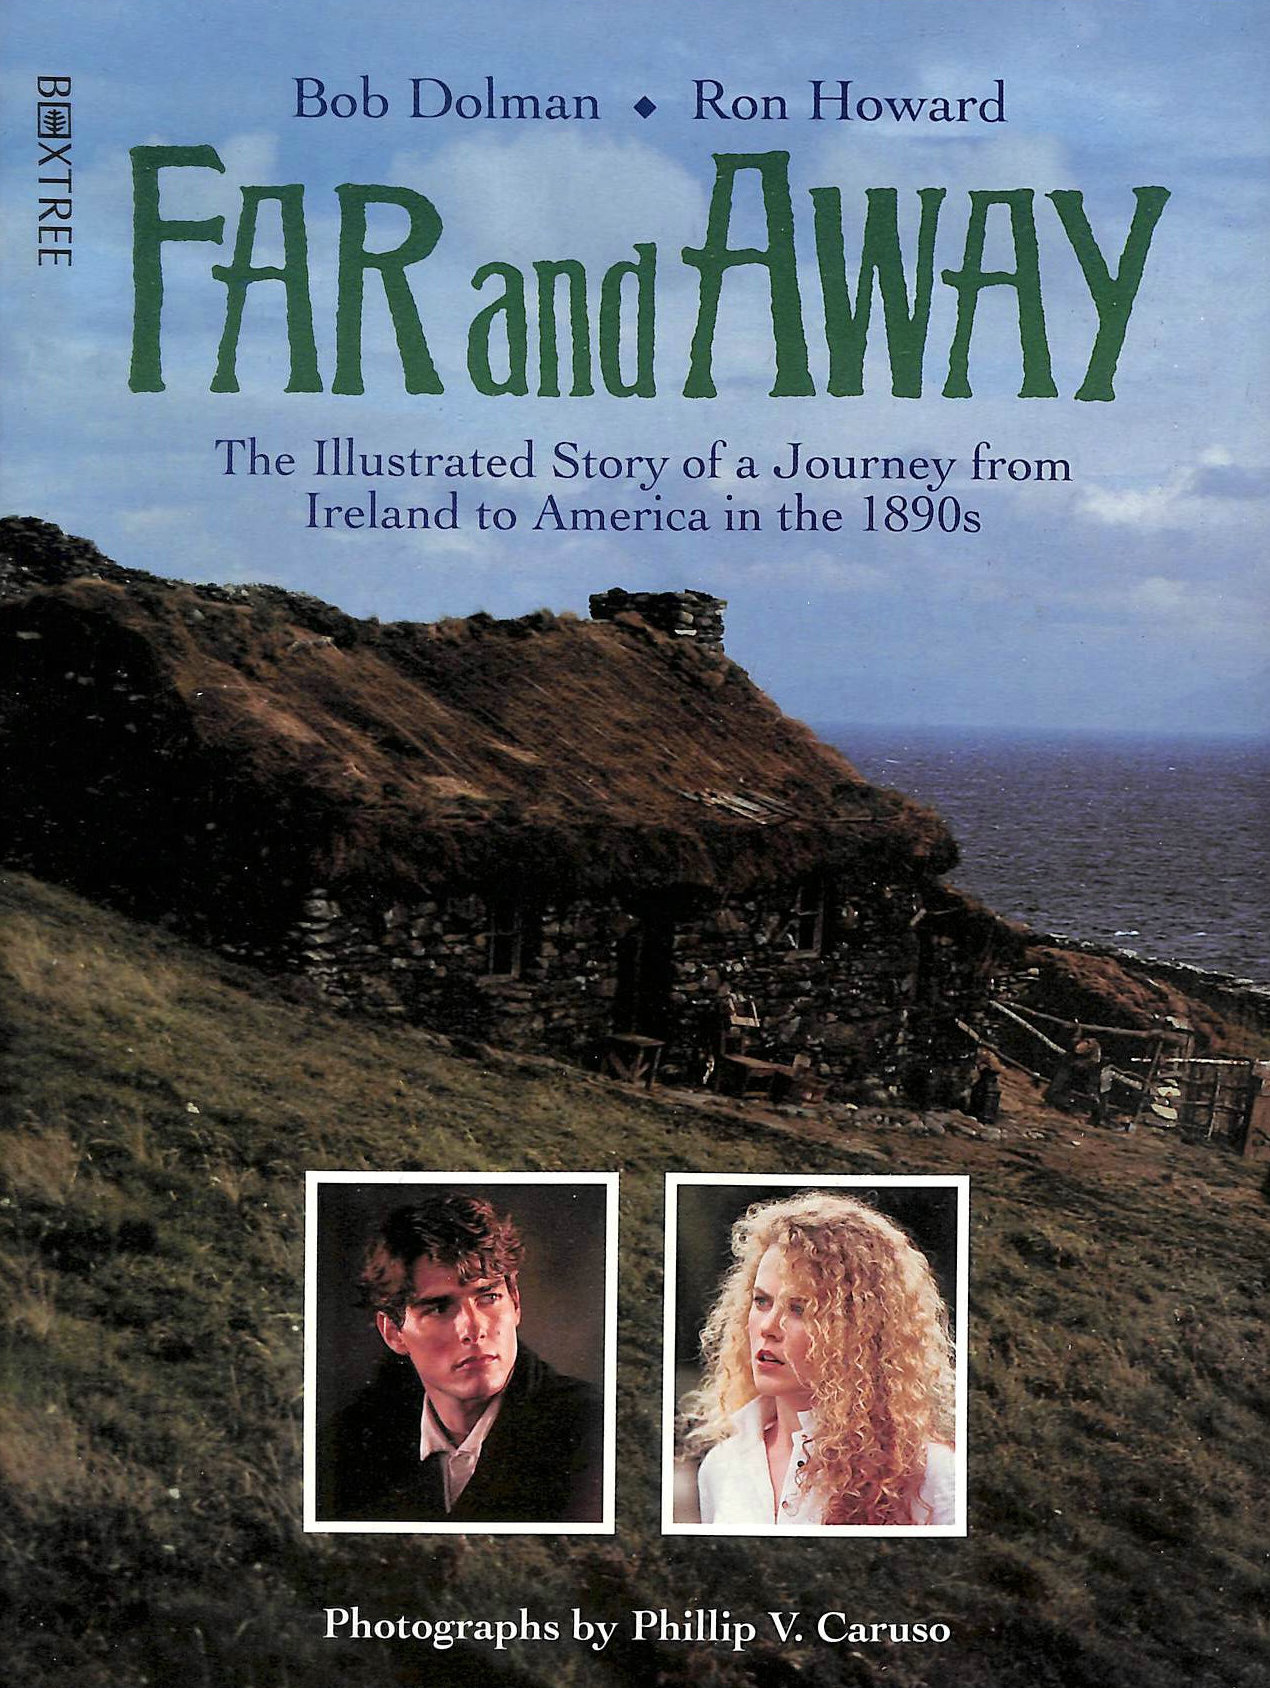 Image for The Making of Far and Away: The Illustrated Story of a Journey from Ireland to America in the 1890's